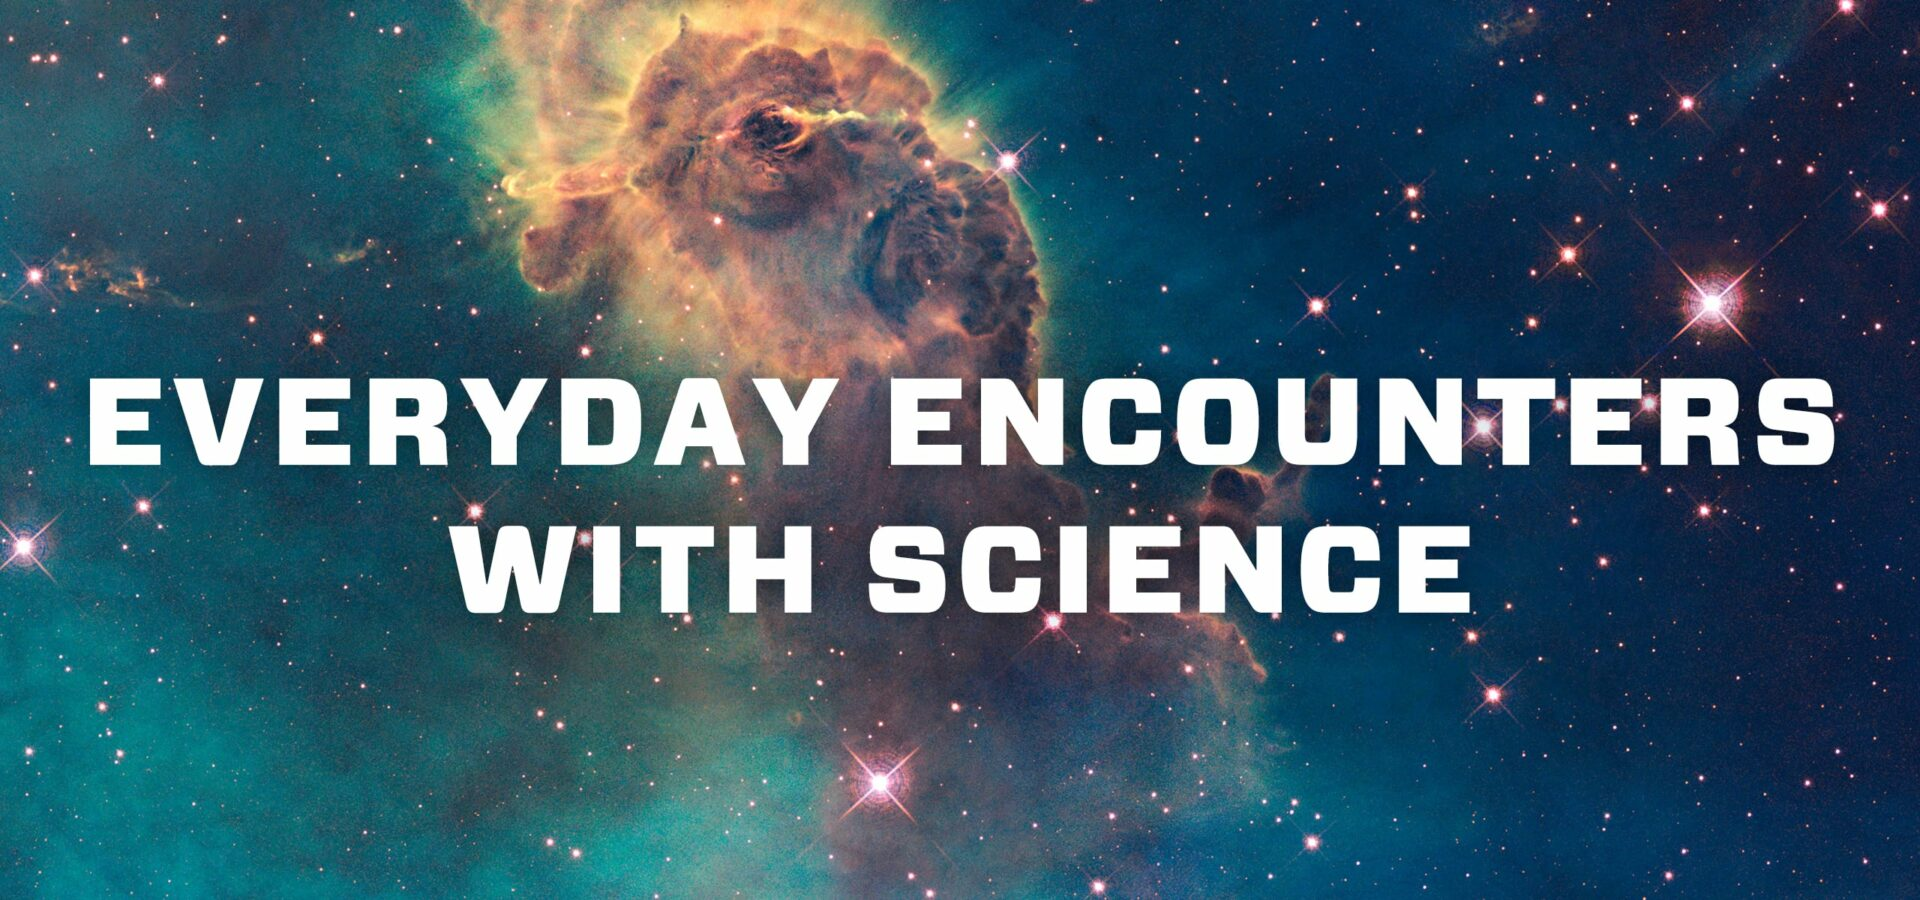 OMSI Brand Positioning—Everyday Encounters with Science